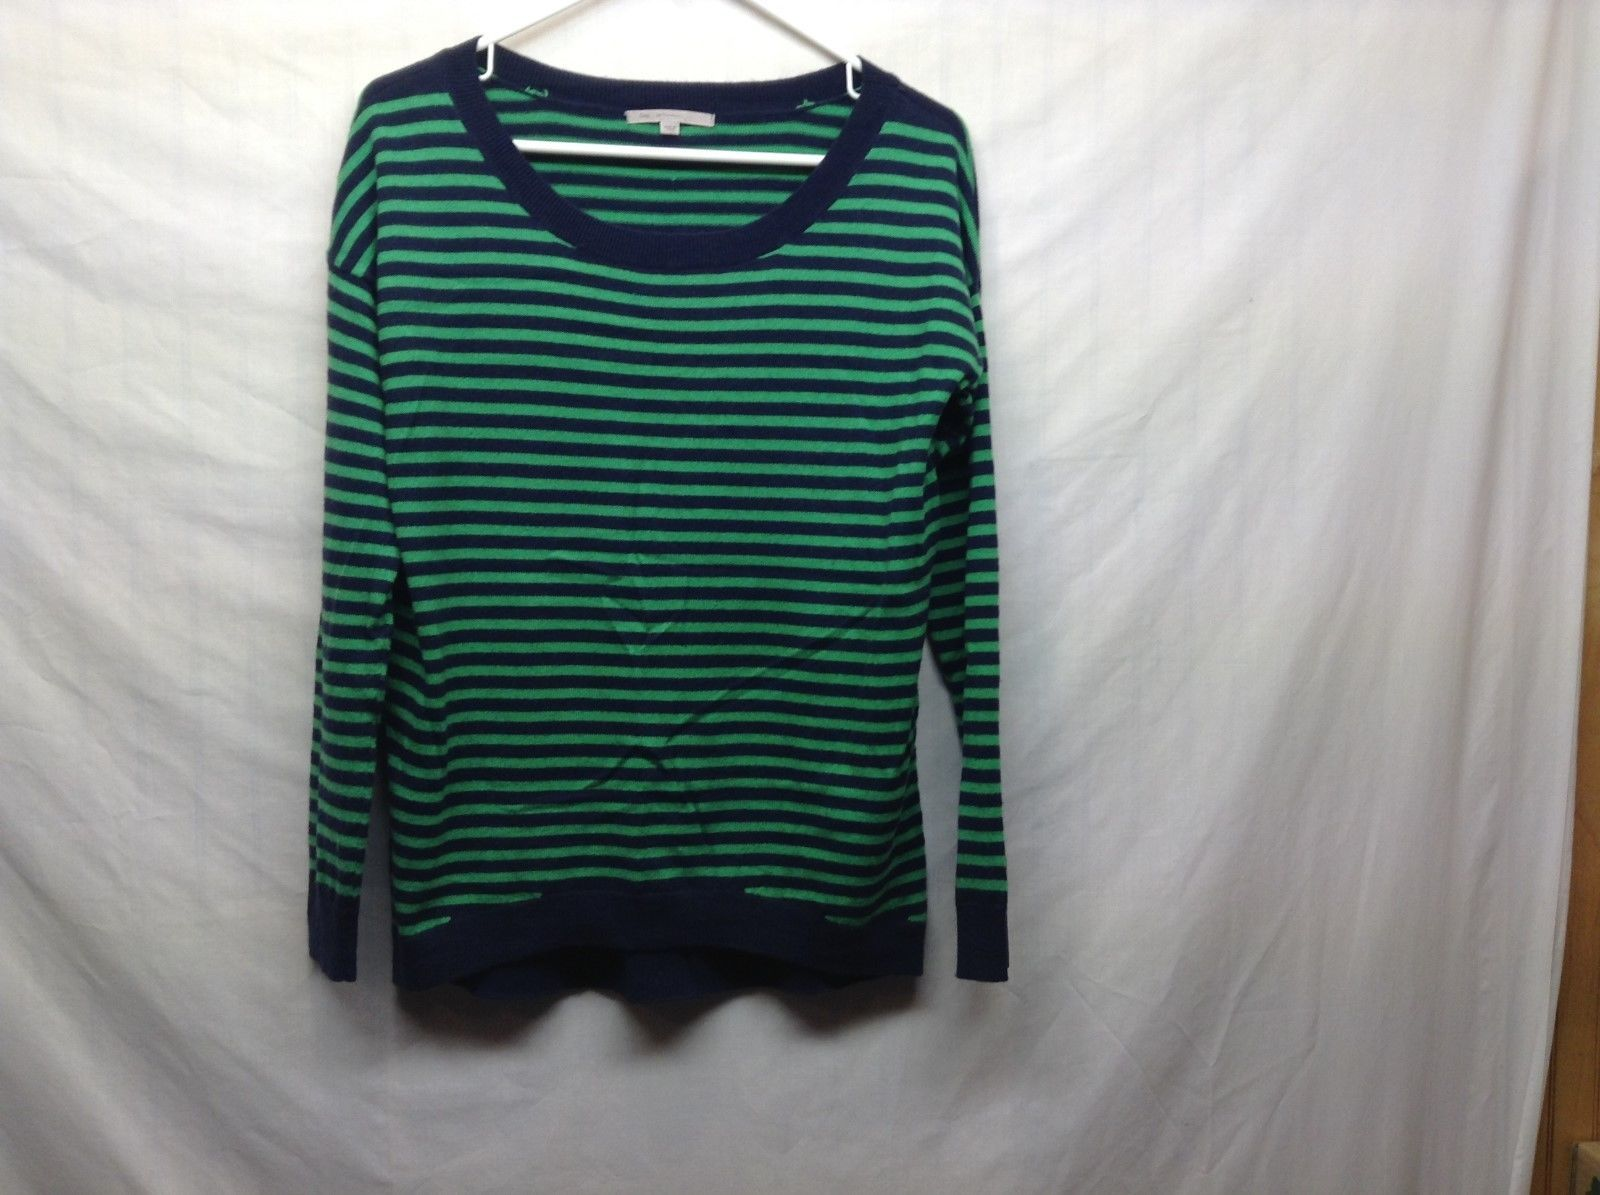 Ladies Blue Green Horizontally Striped Lt Weight Scoop Neck Sweater by GAP